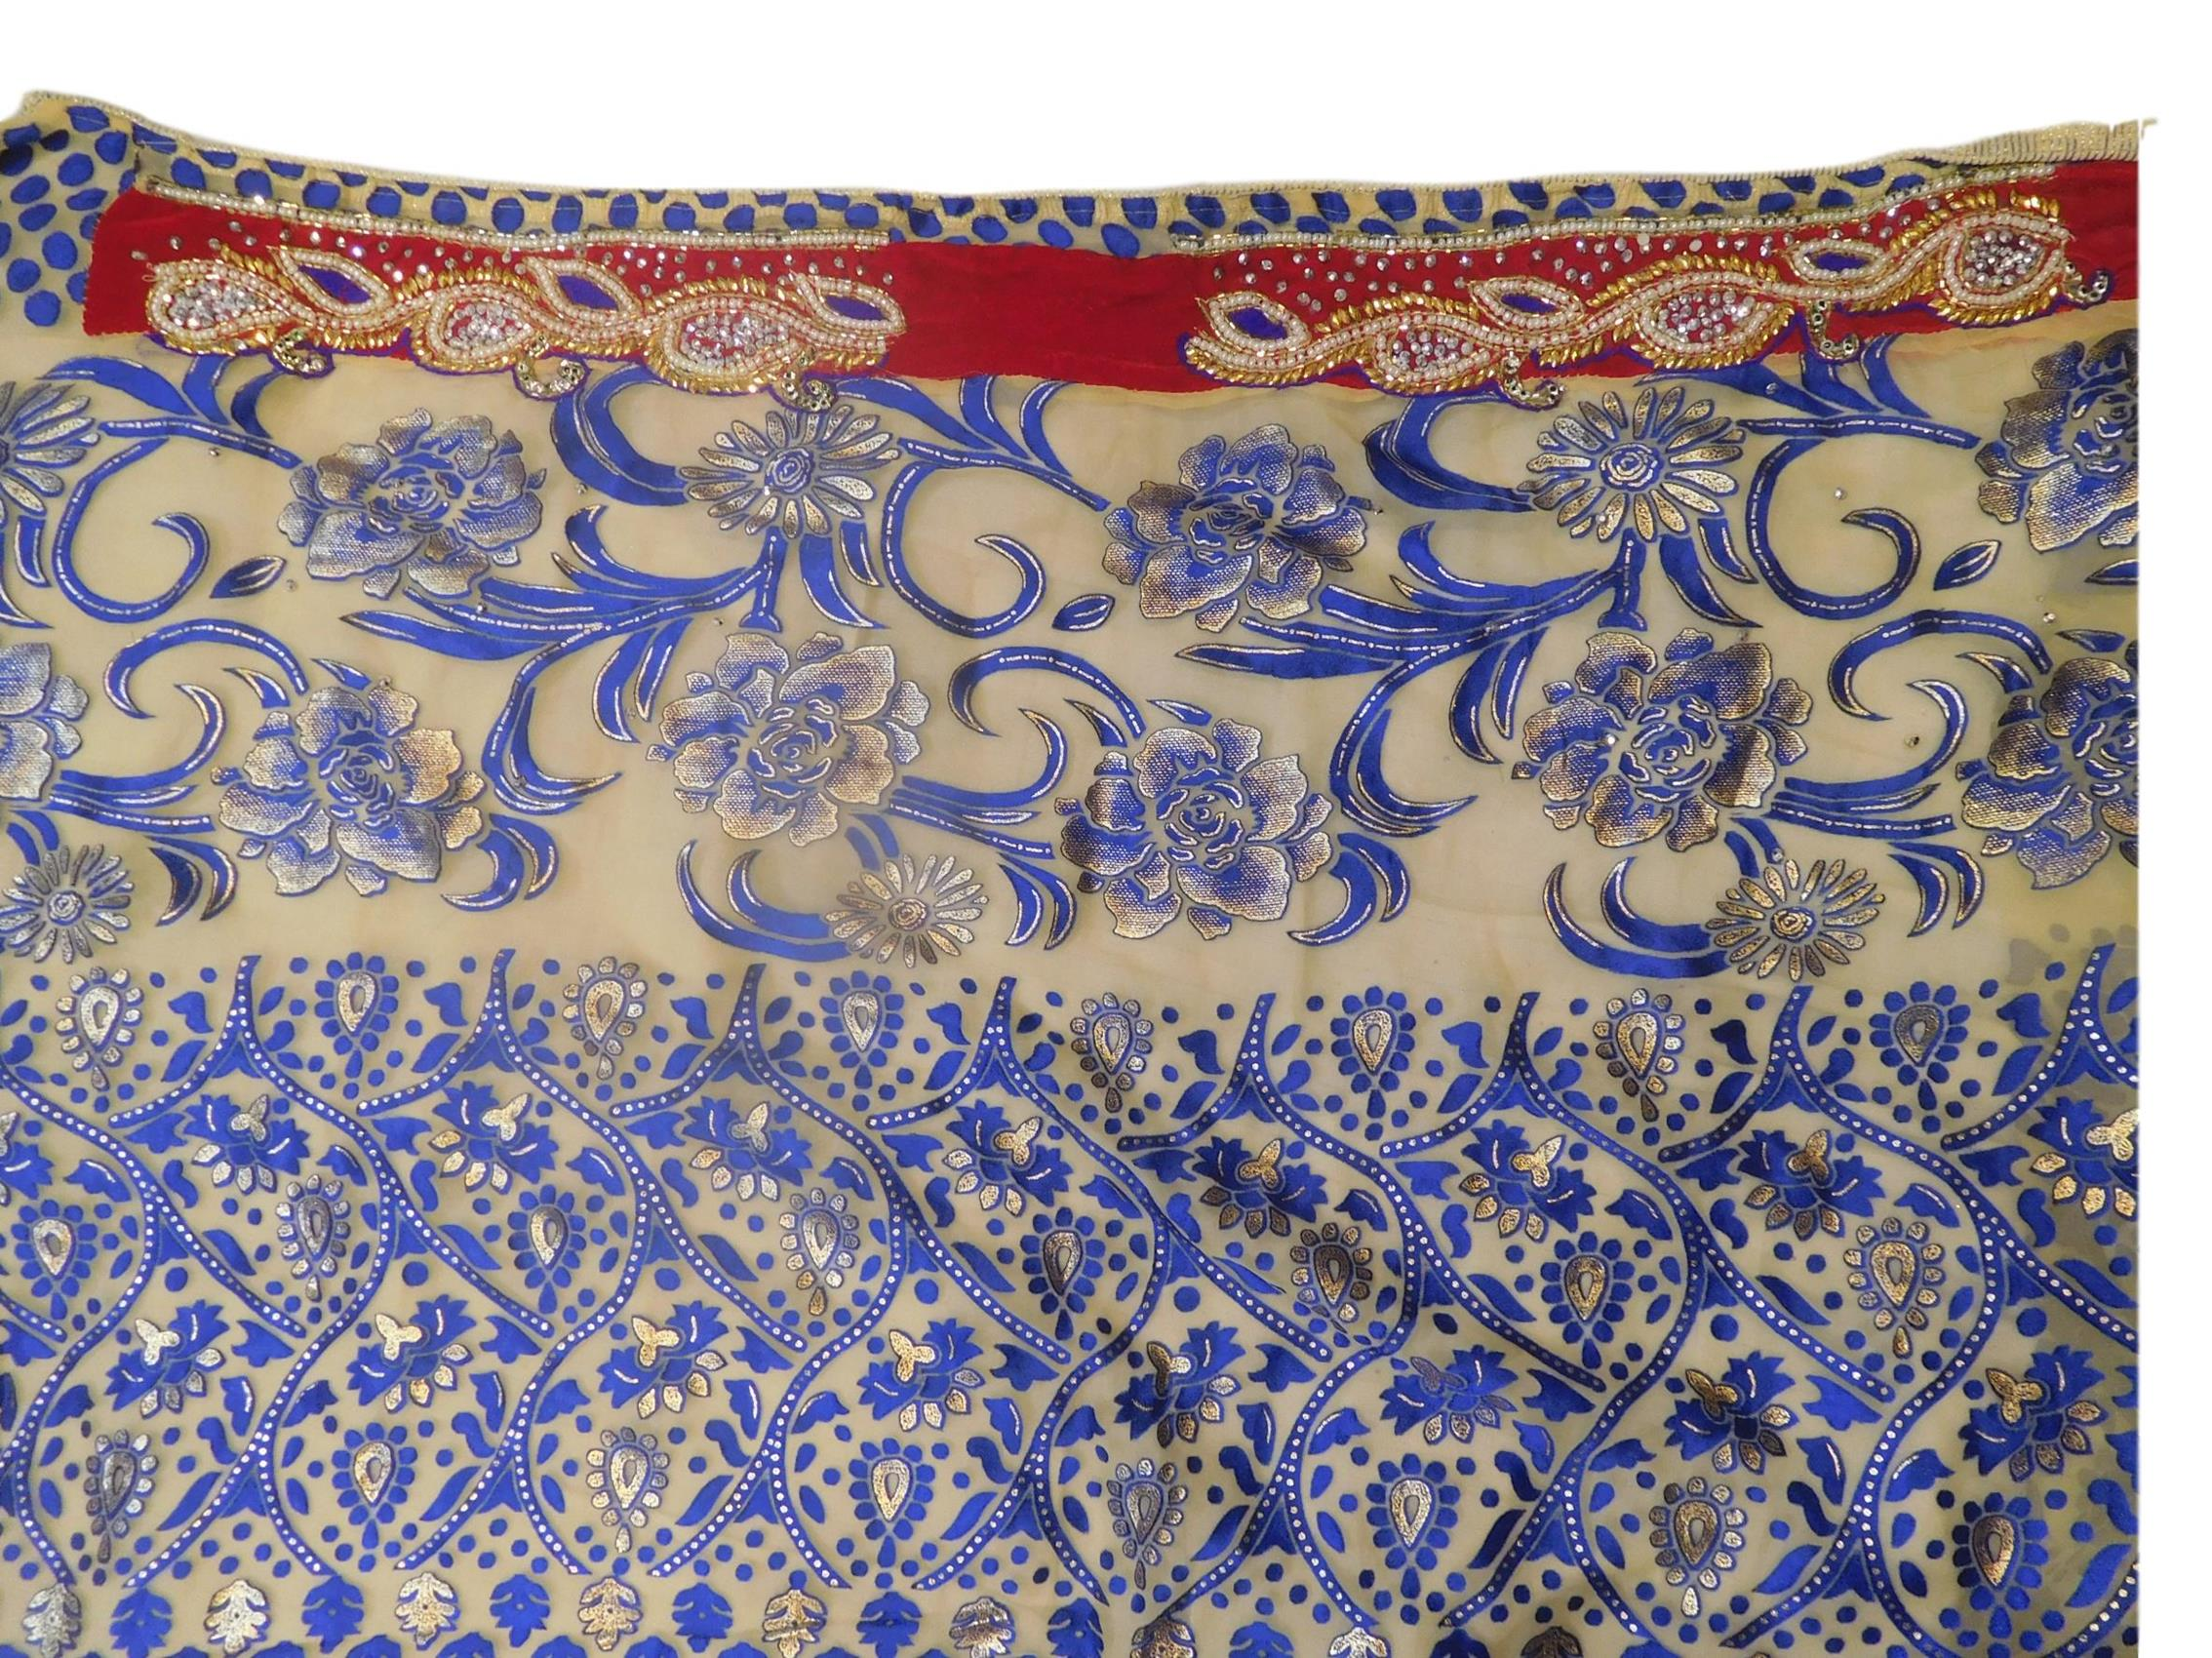 Blue & Cream Designer Wedding Partywear Brasso Hand Embroidery Cutdana Stone Beads Work Kolkata Saree Sari E247